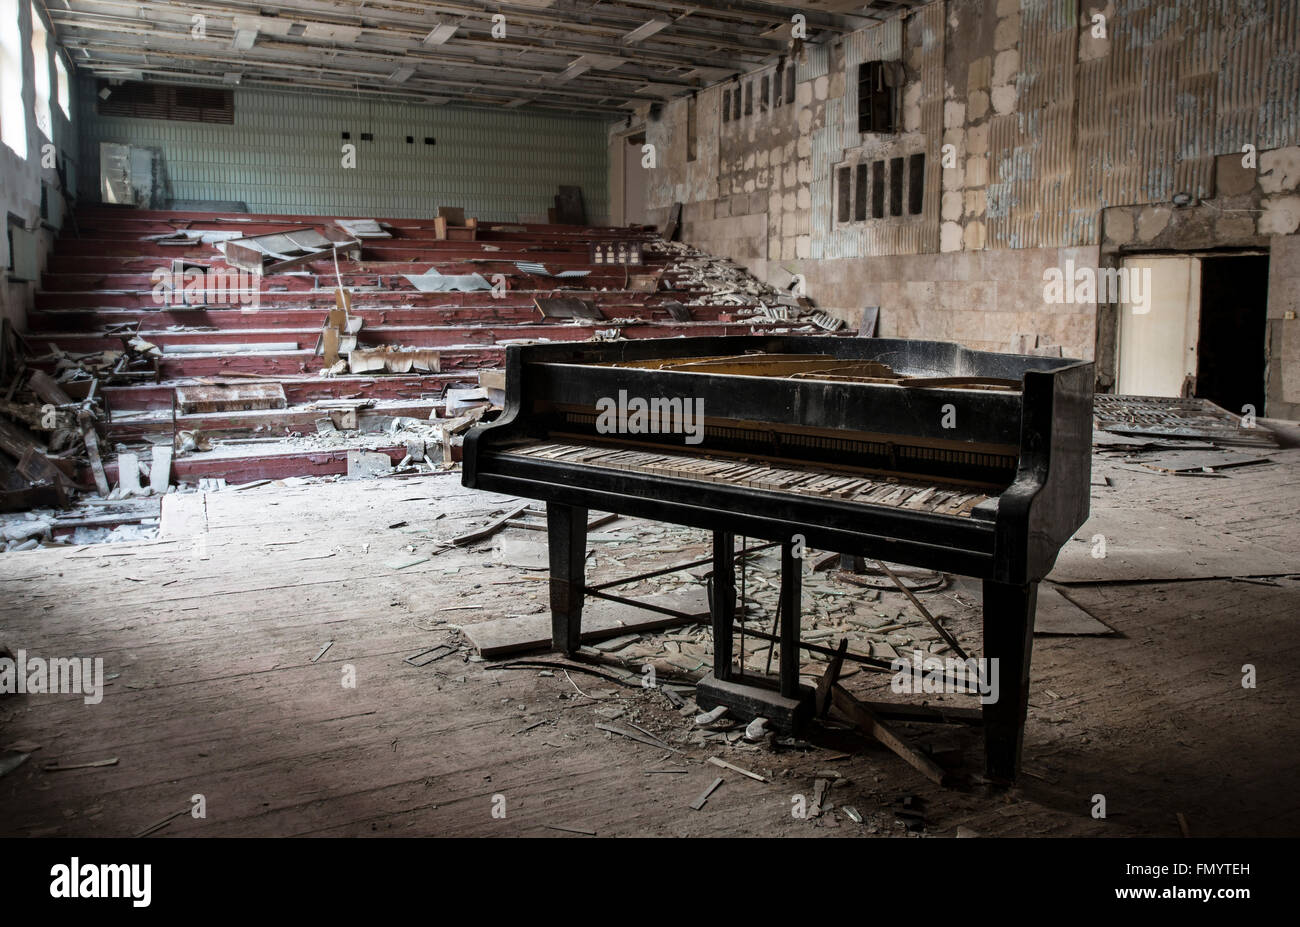 Lone piano in music hall of  Pripyat, Chernobyl scene of 1986 nuclear disaster - Stock Image